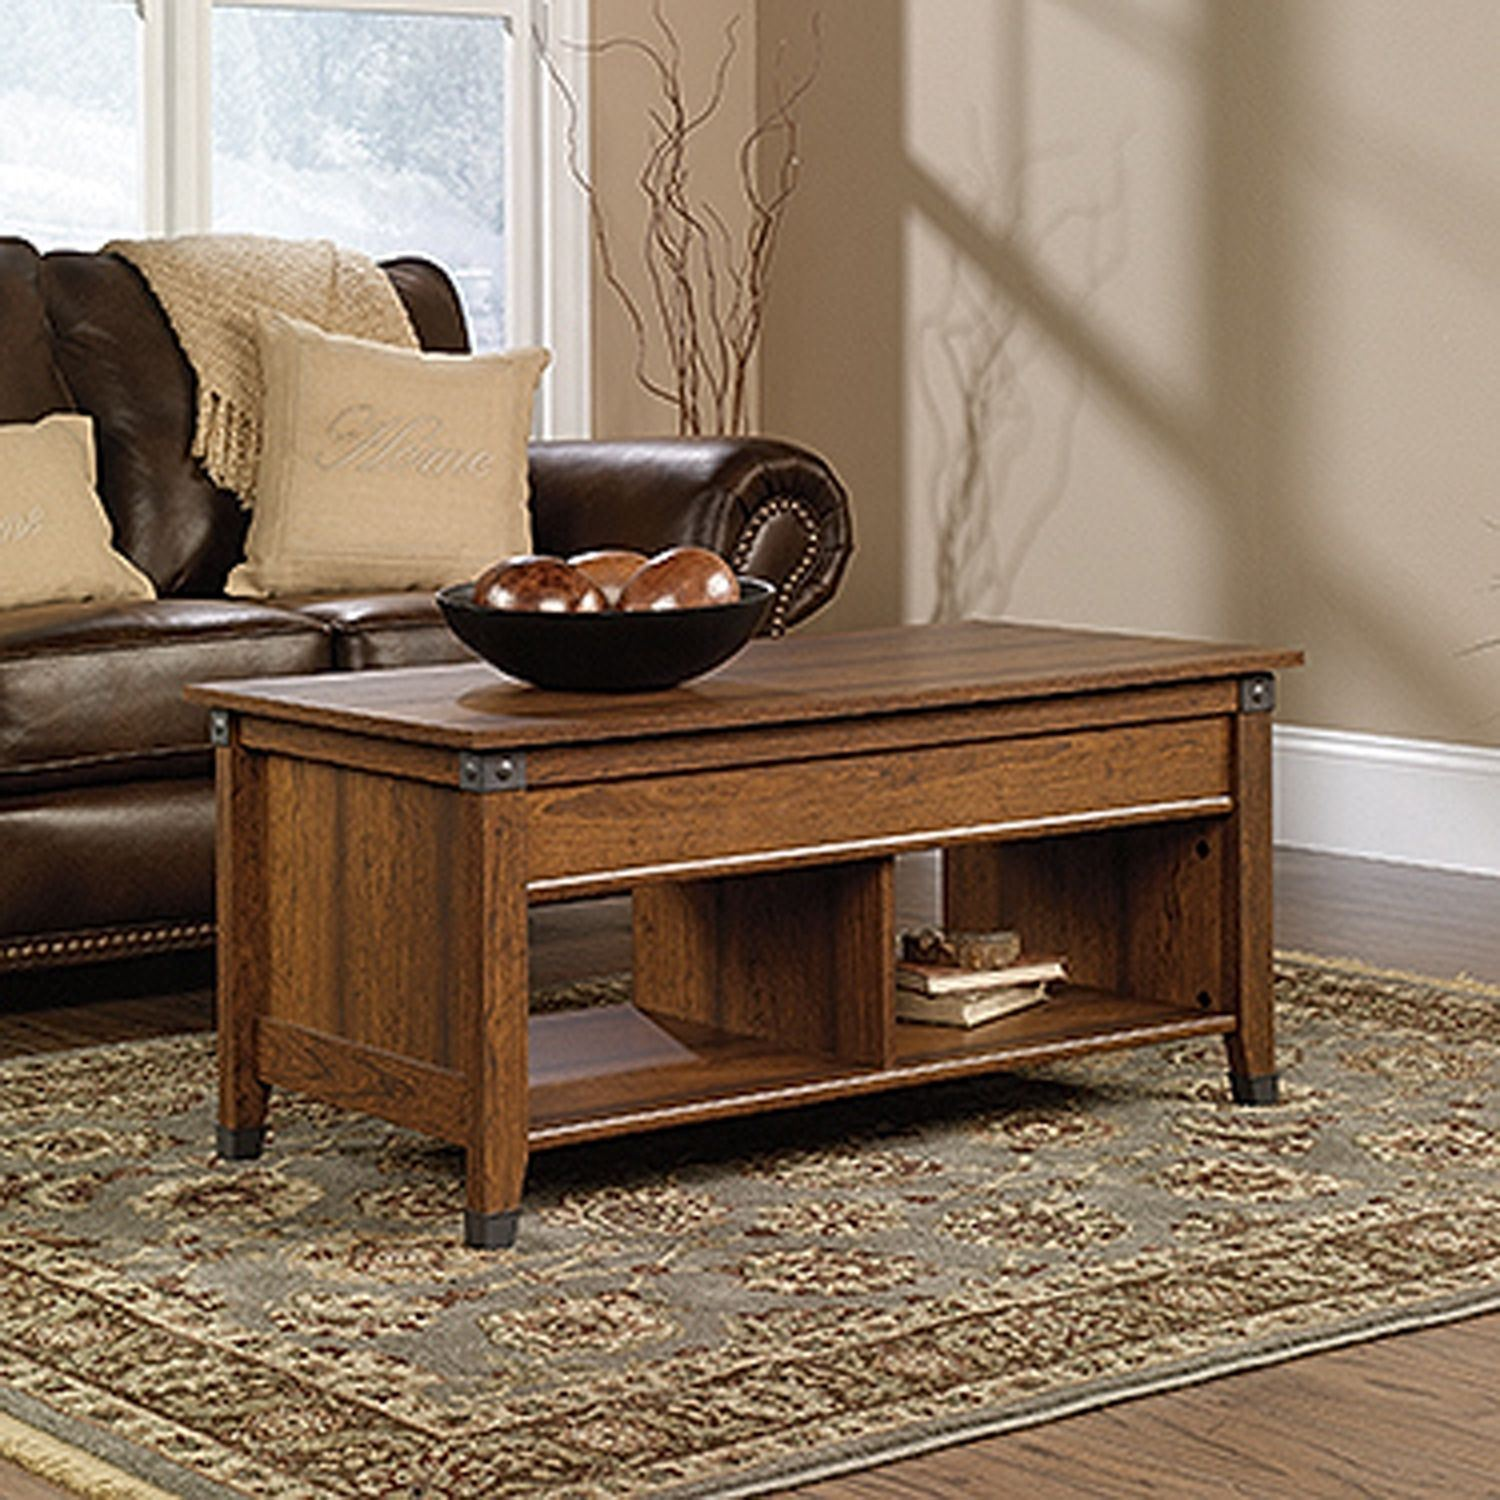 Picture of Carson Forge Lift-Top Coffee Table Washington Cher